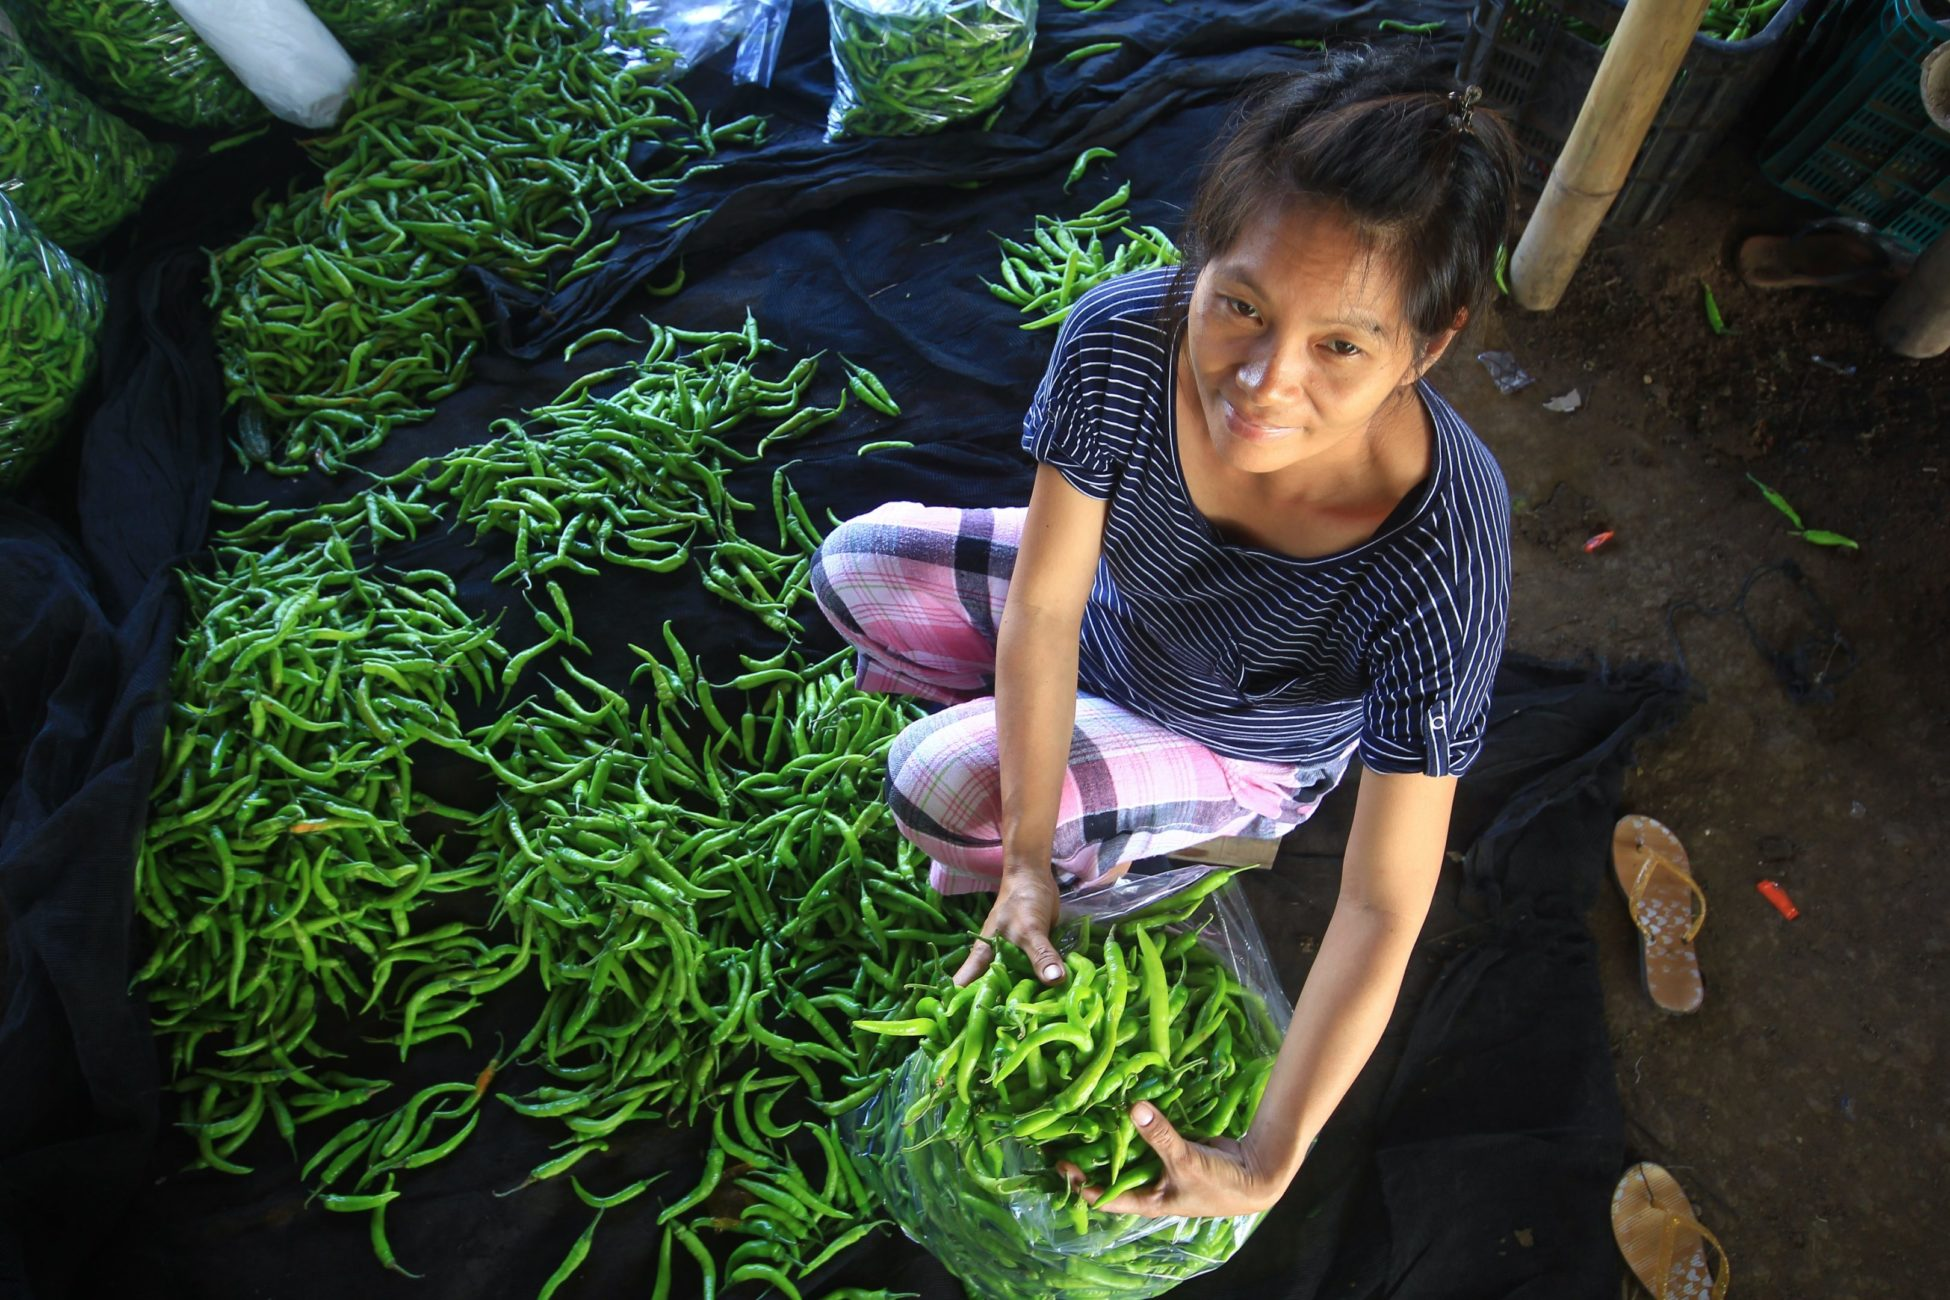 Photo taken from above of a Asian woman crouched down to put long green peppers, scattered over the ground, into a plastic bag.